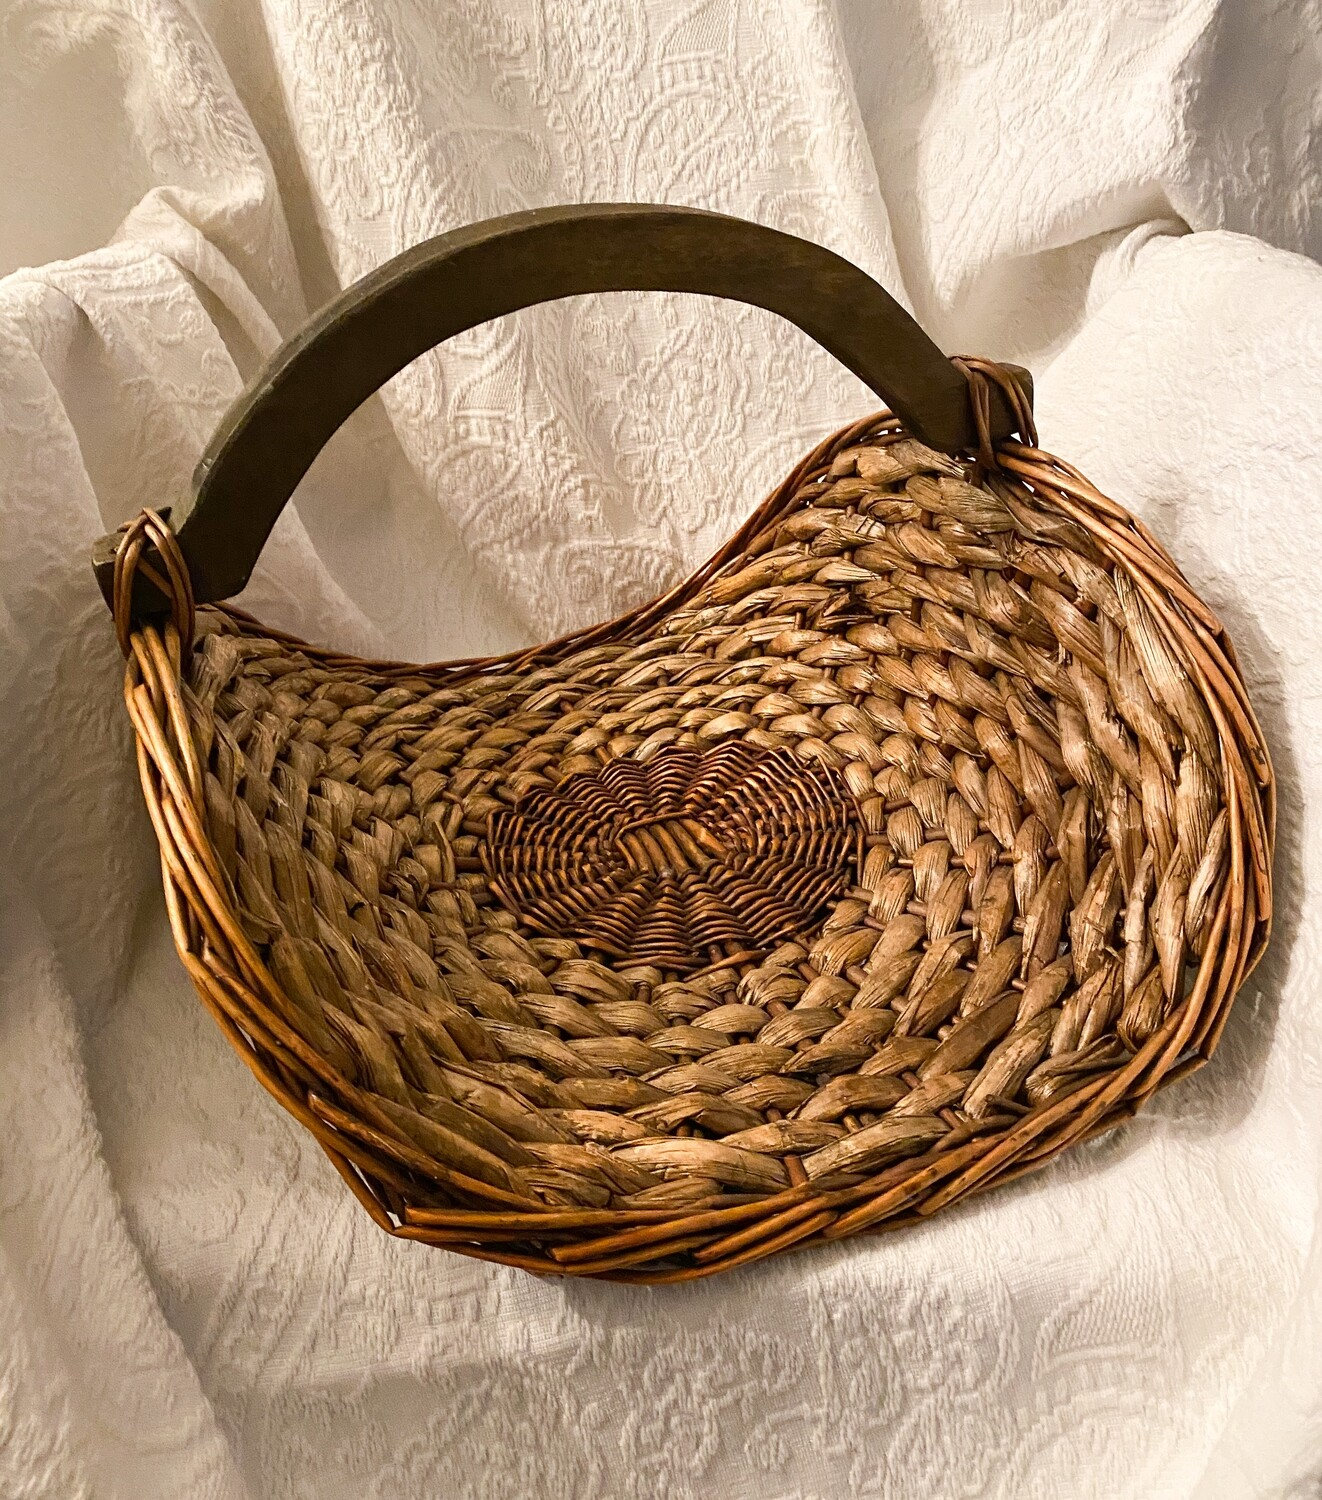 Wood Handled Gathering Basket